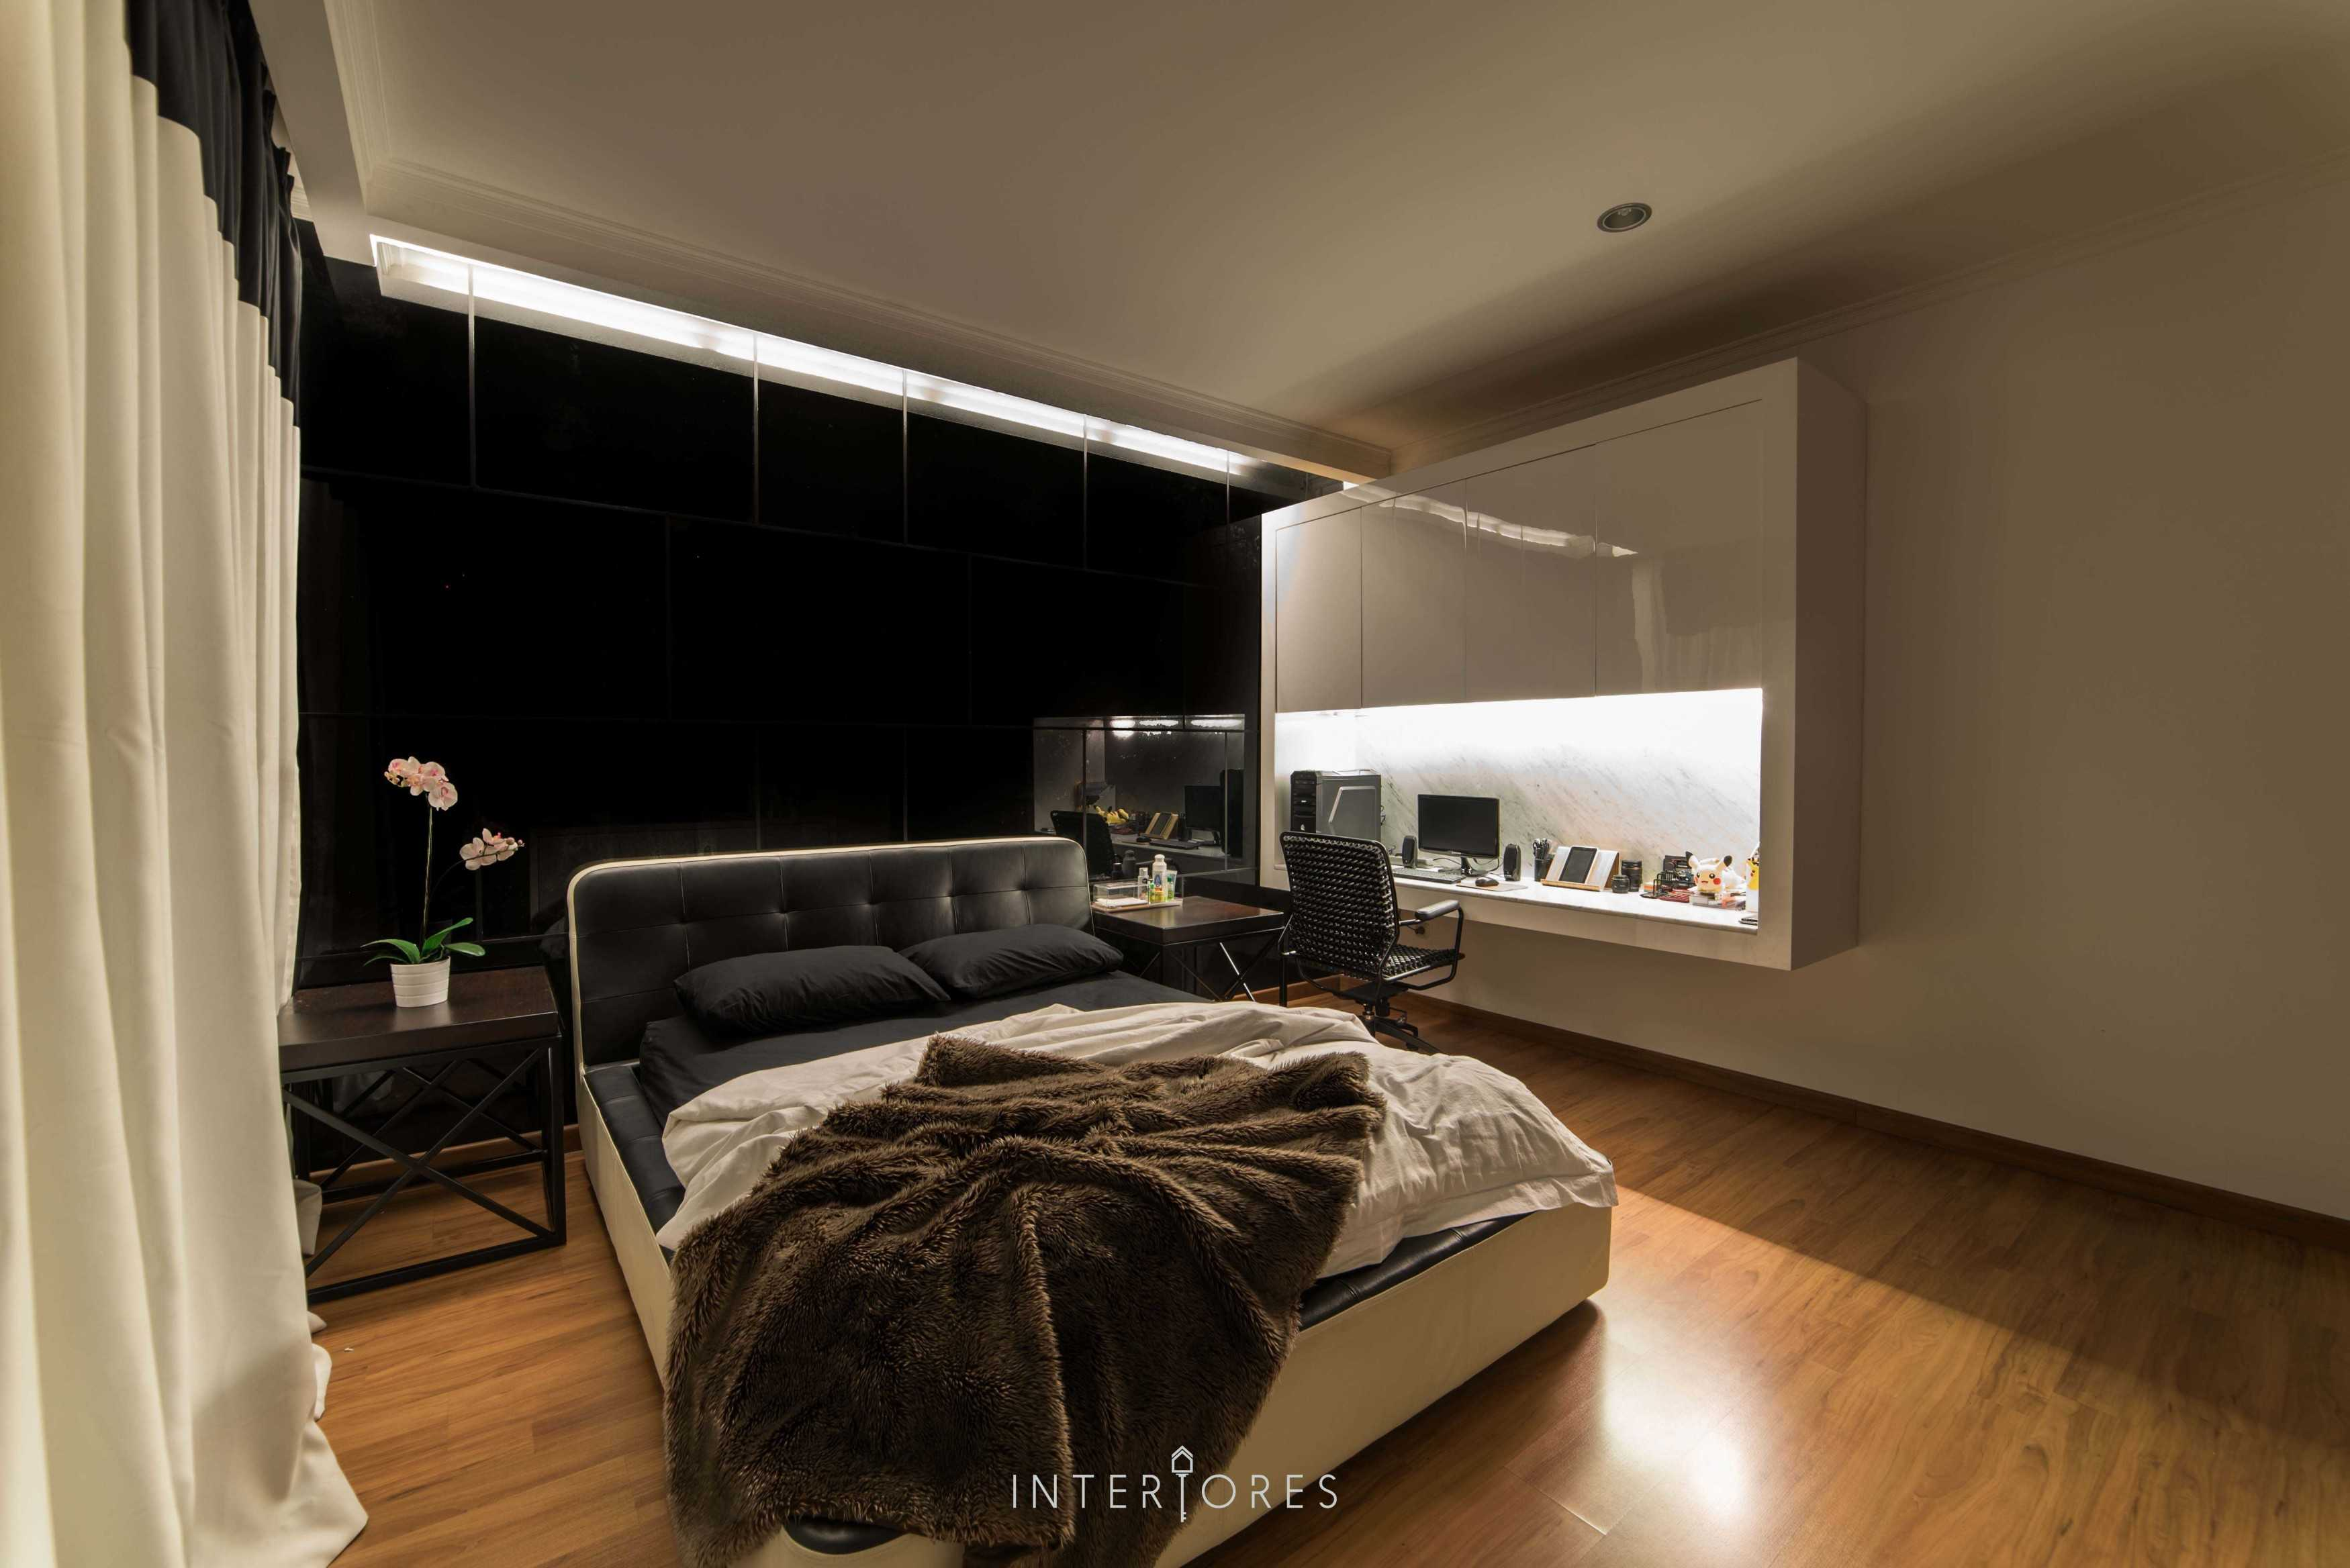 Interiores Interior Consultant & Build Greta 90 Bintaro Bintaro Bedroom Kontemporer  17672